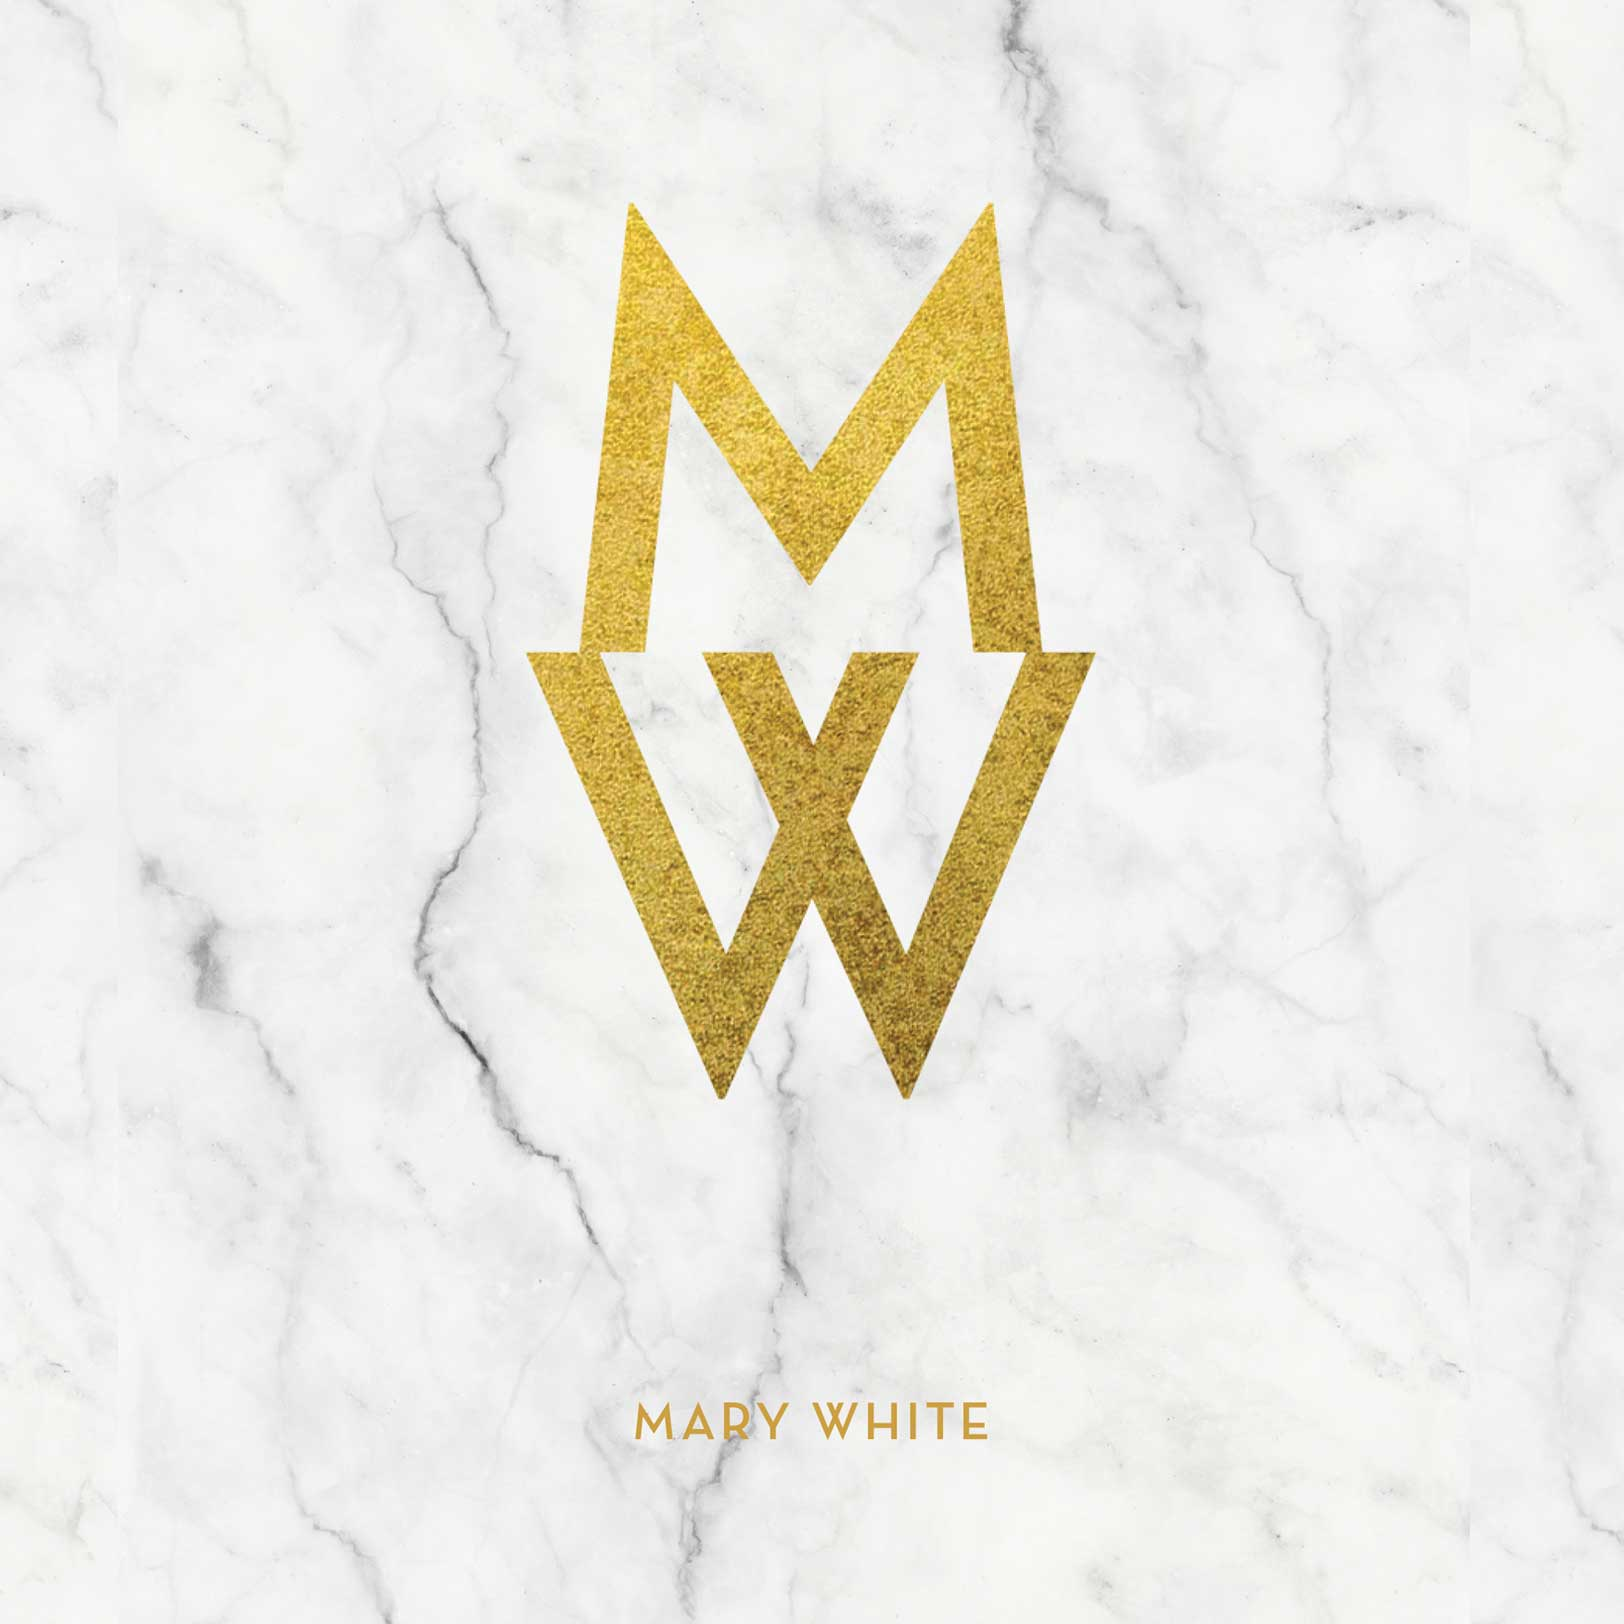 Mary White Vodka logo